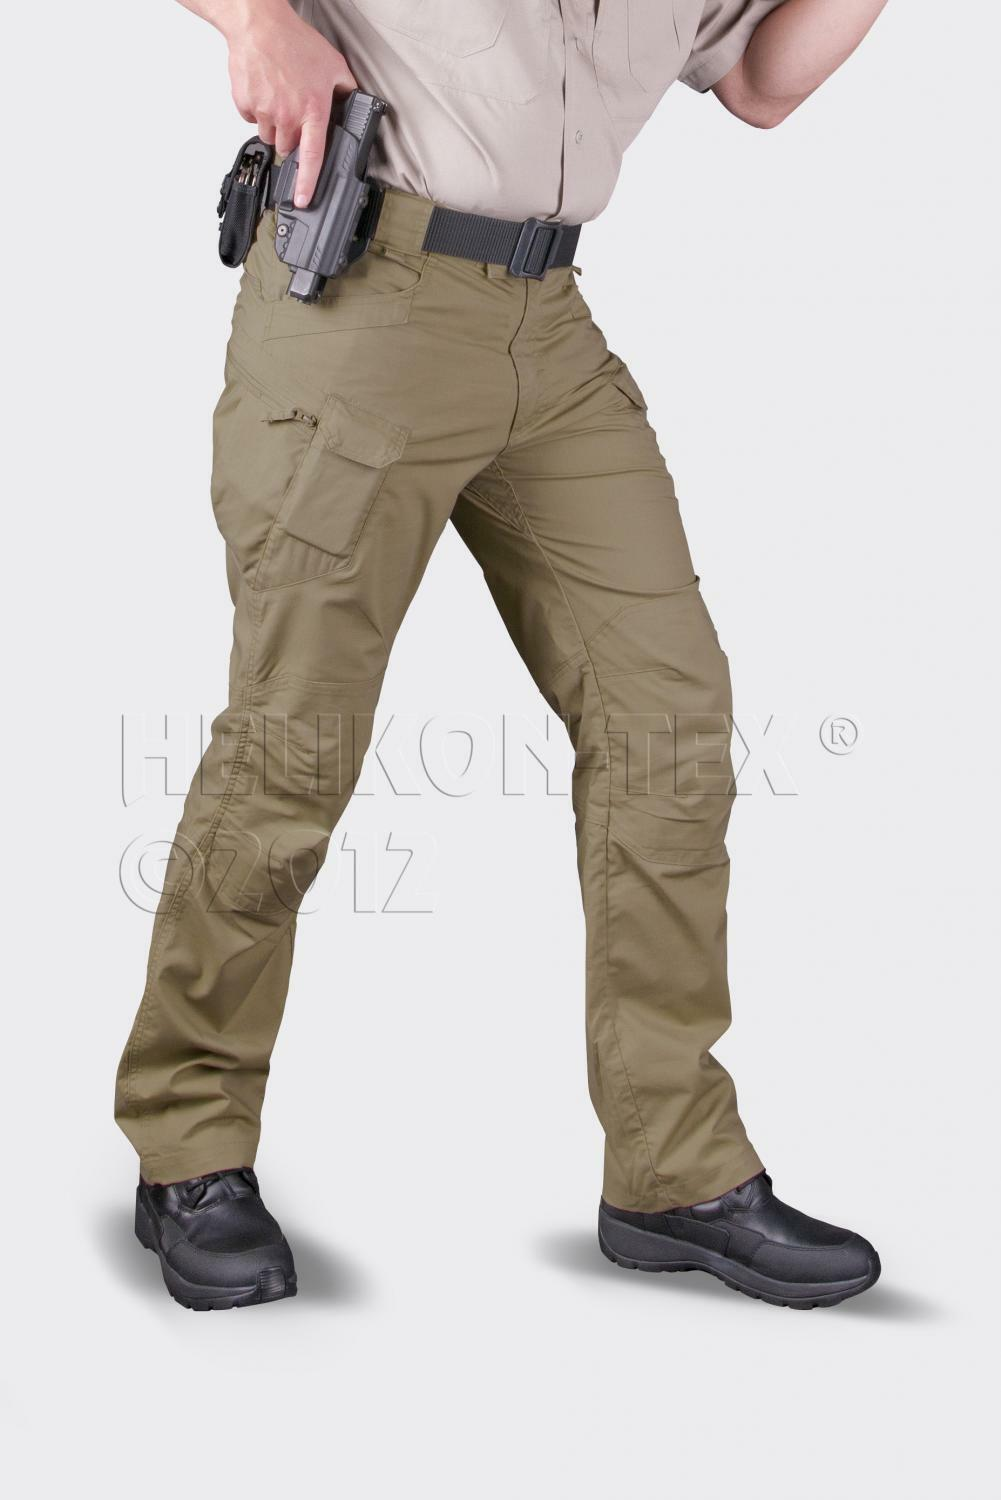 HELIKON TEX UTP URBAN TACTICAL 32/34 PANTS Trousers Hose Coyote 32/34 TACTICAL Medium Long 633e84